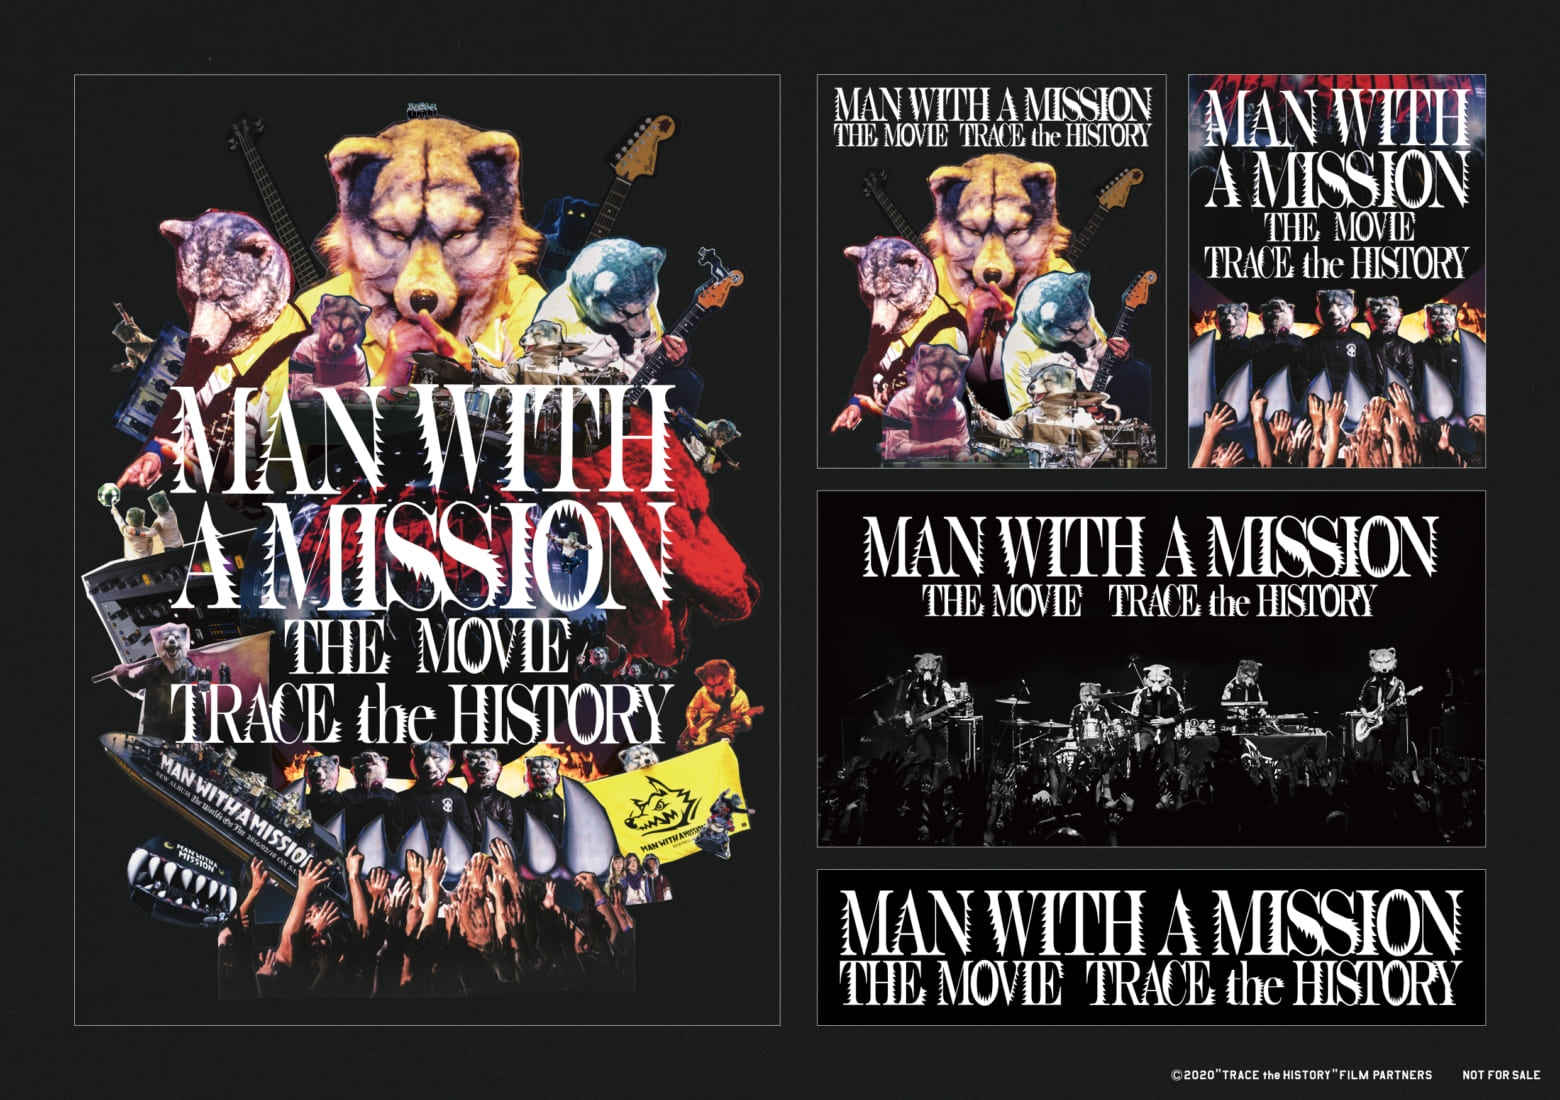 Man With A Mission 初ドキュメンタリー映画メインビジュアル